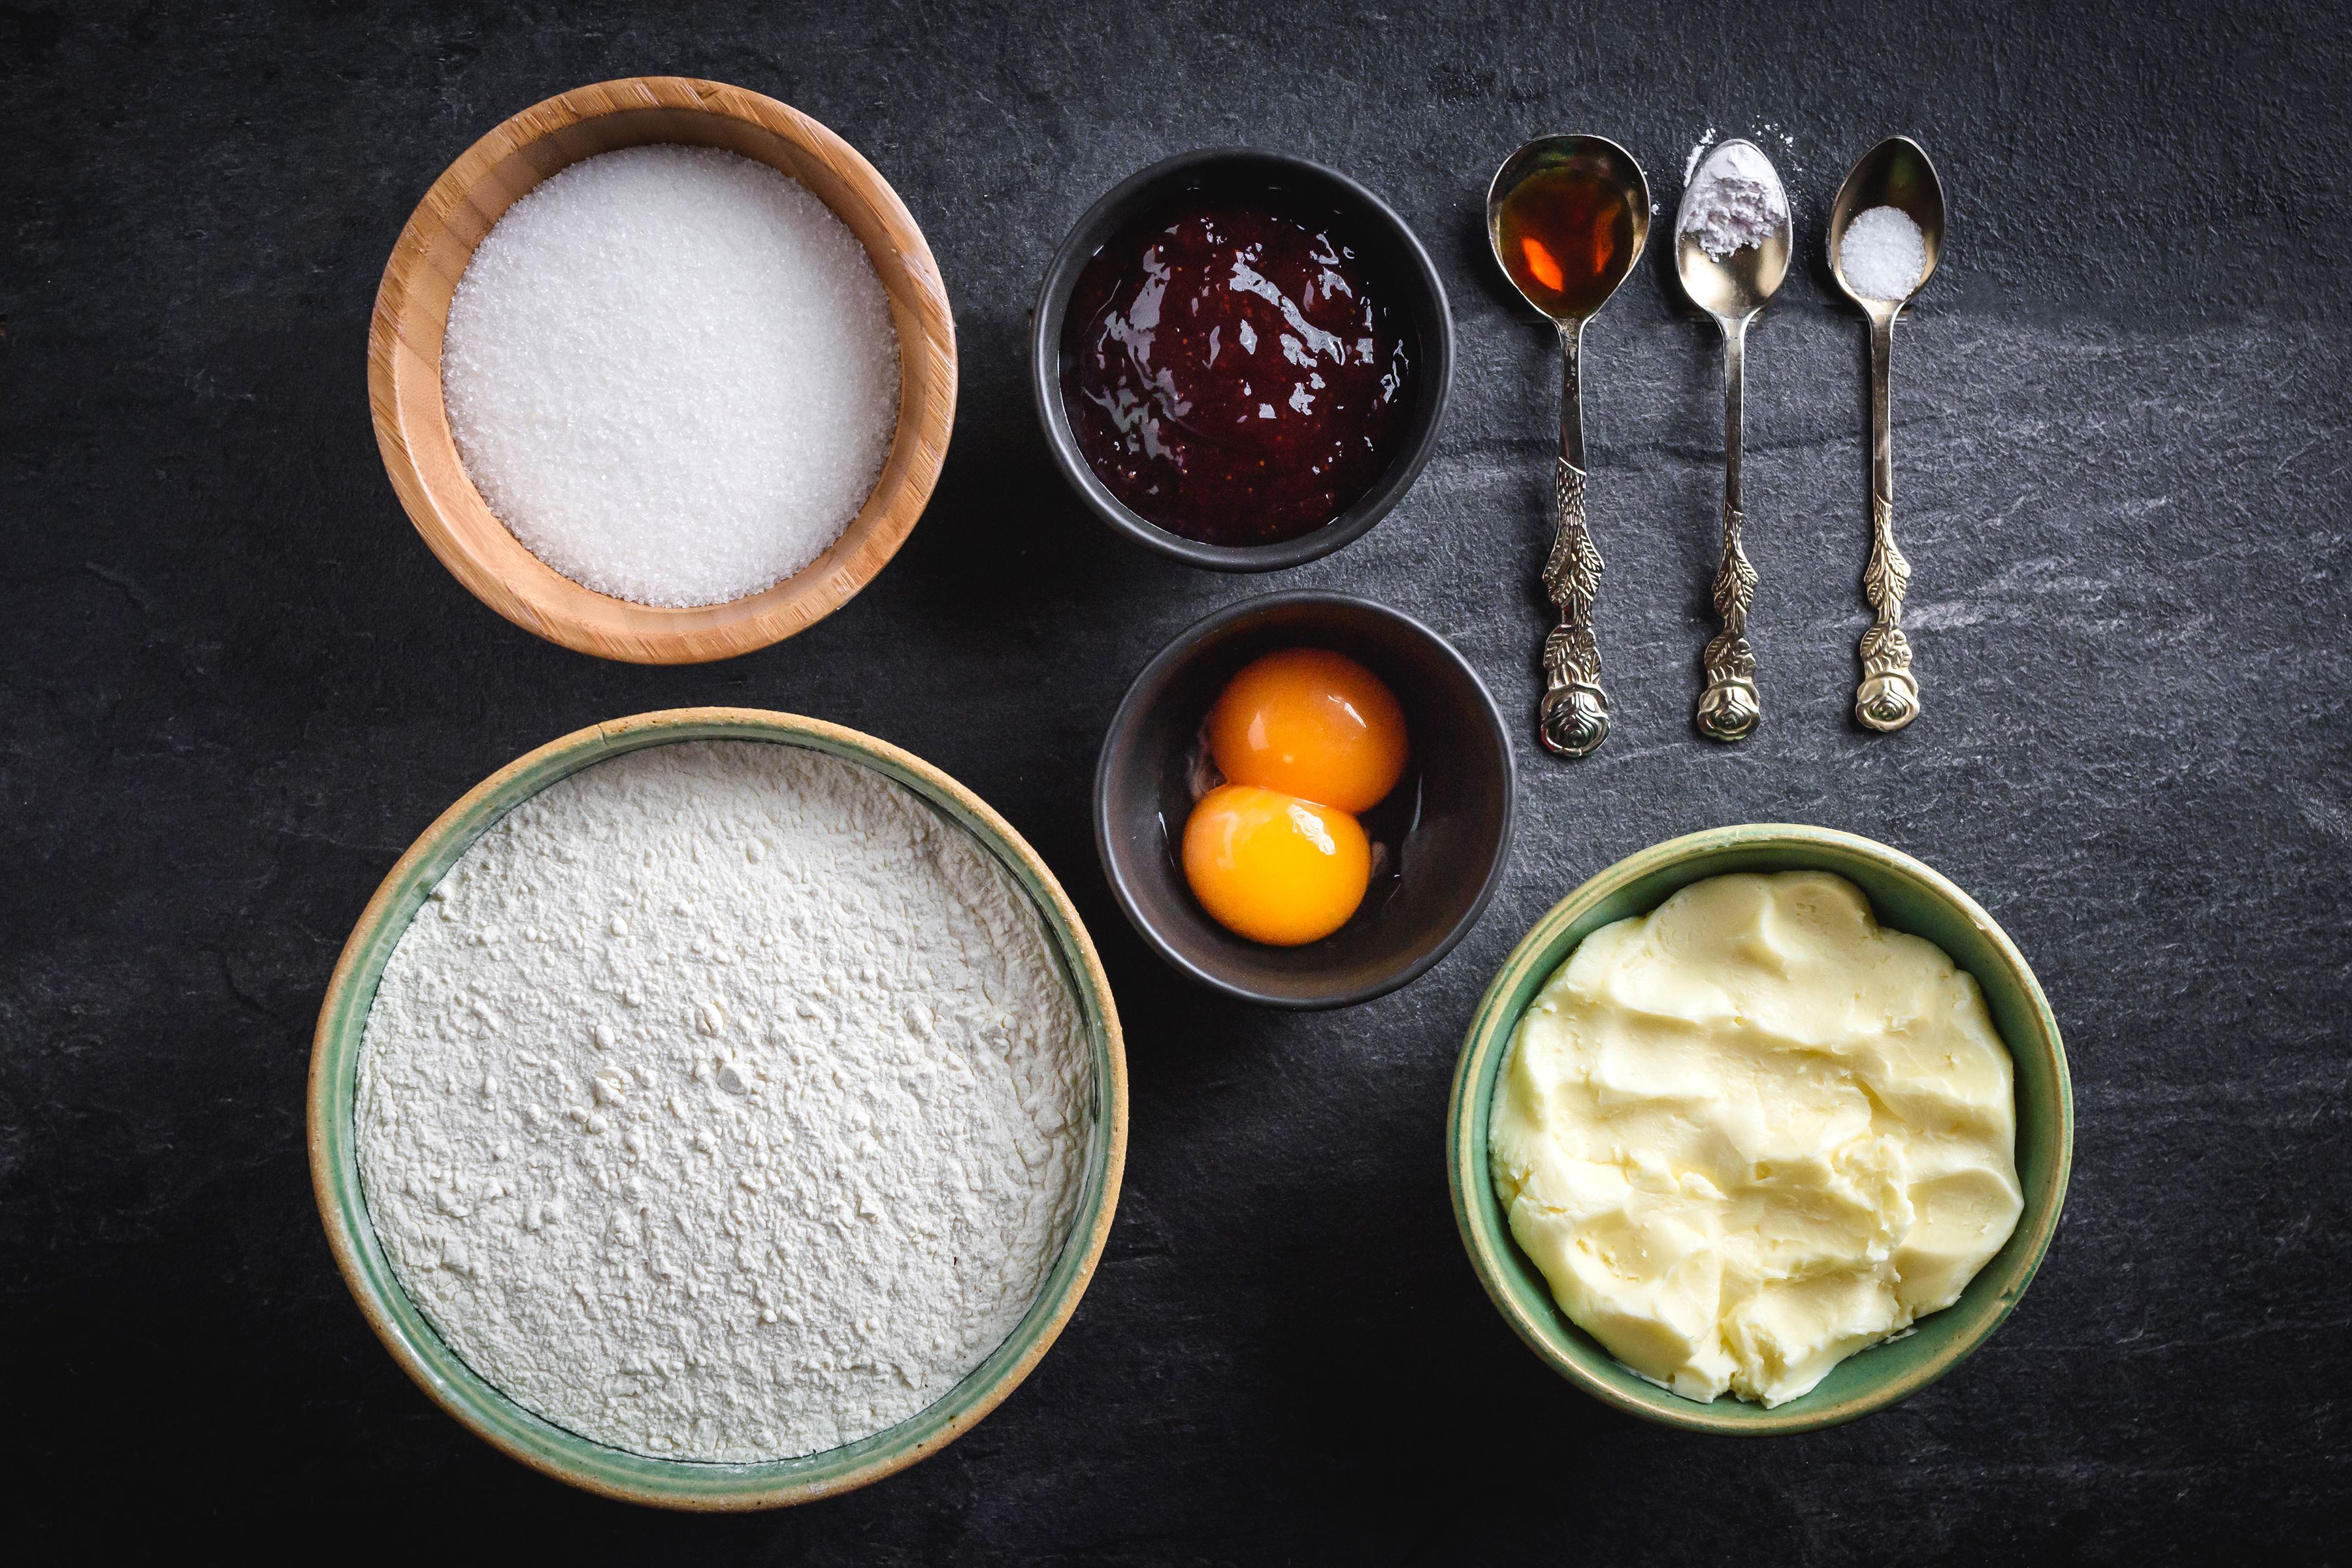 Ingredients for Polish butter cookies